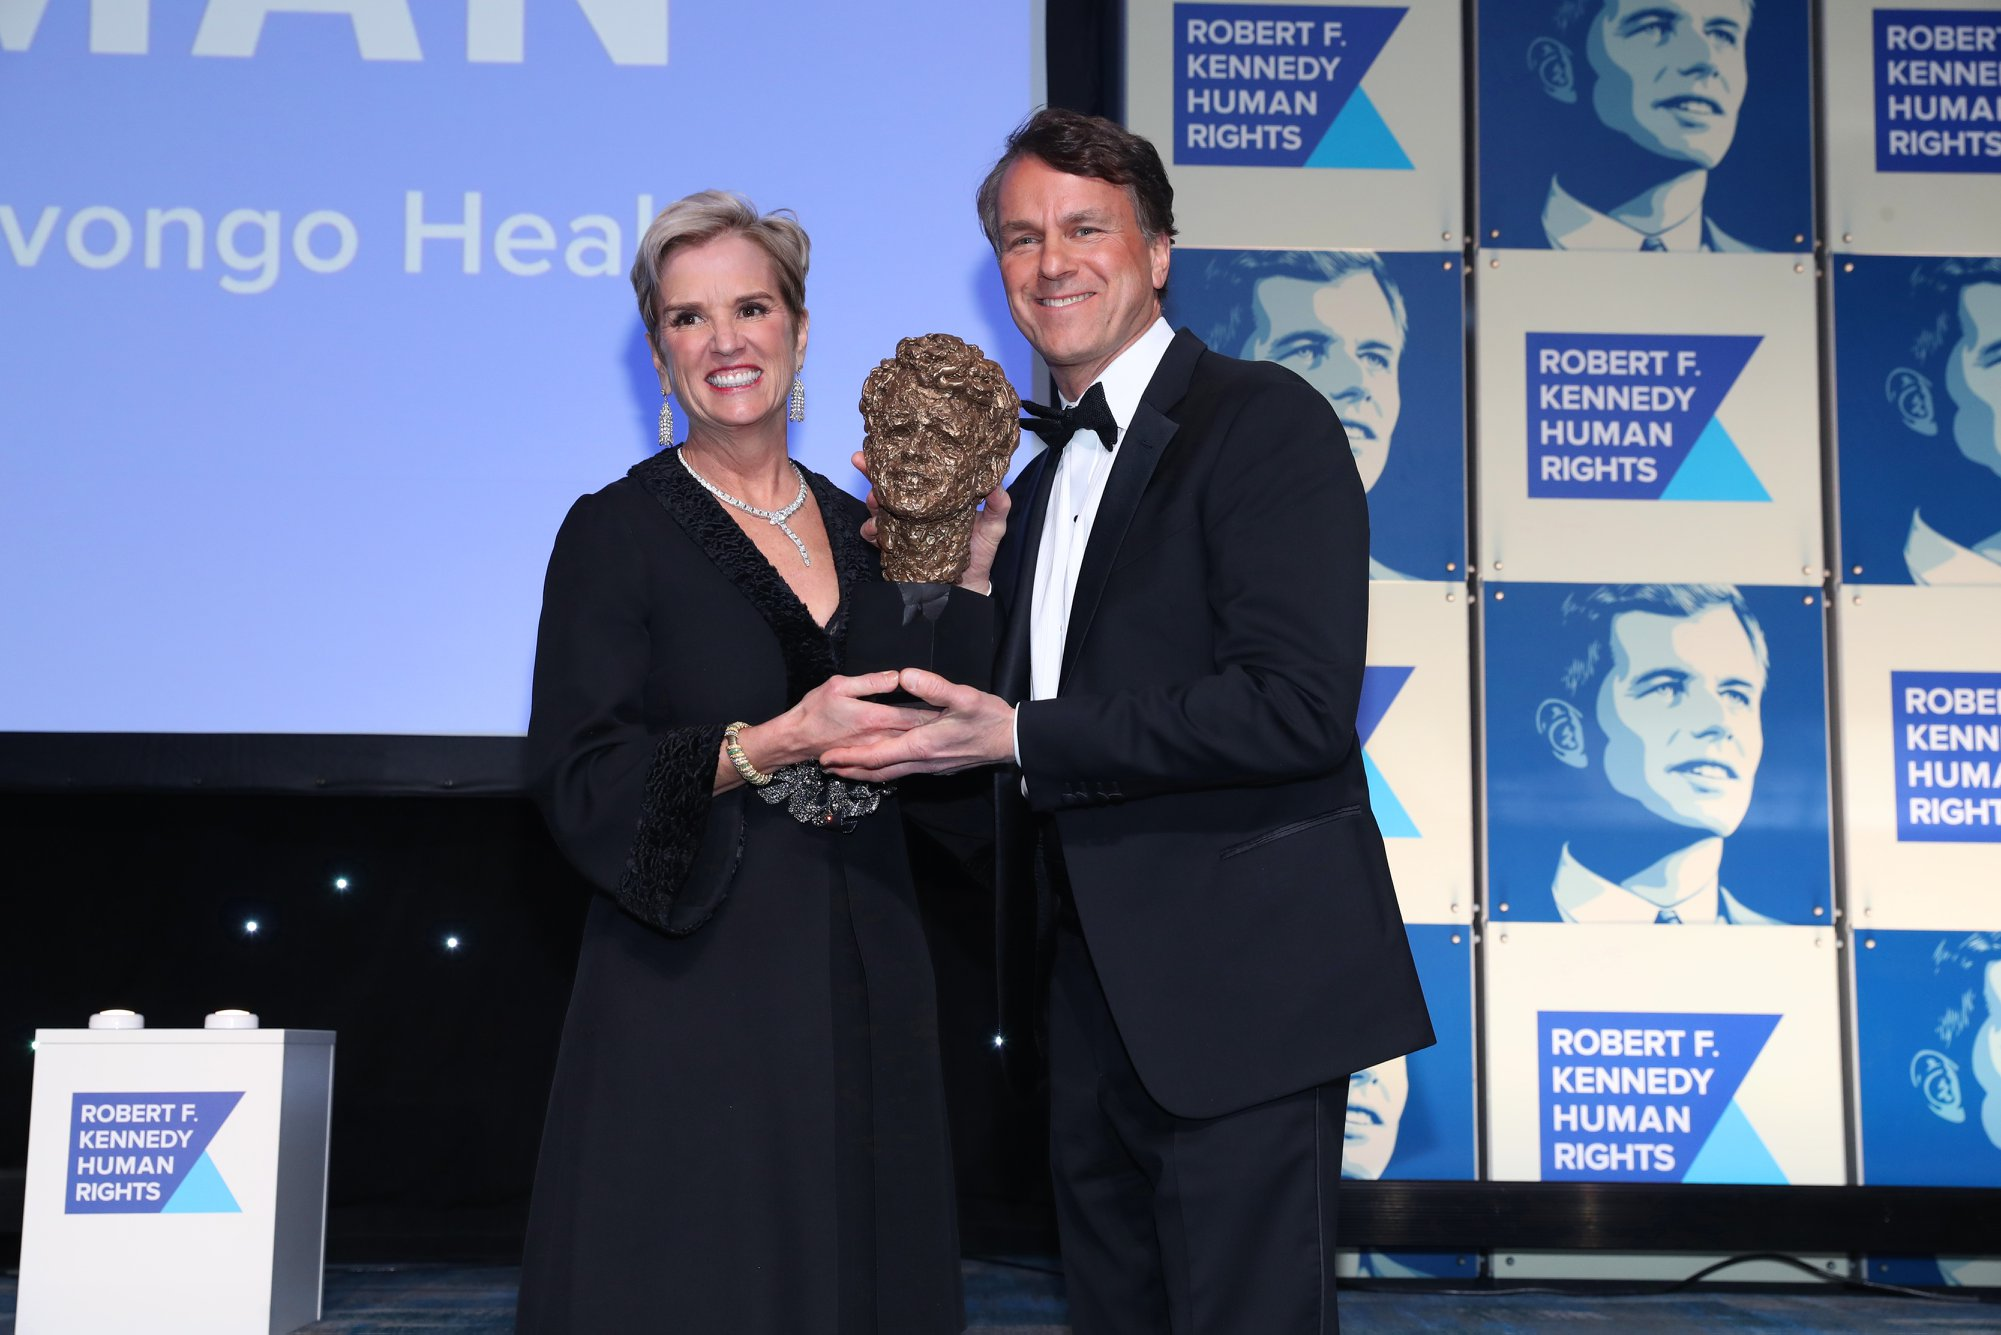 Health eVillages Board Member Glen Tullman Receives 2019 Robert F. Kennedy Ripple of Hope Award in New York